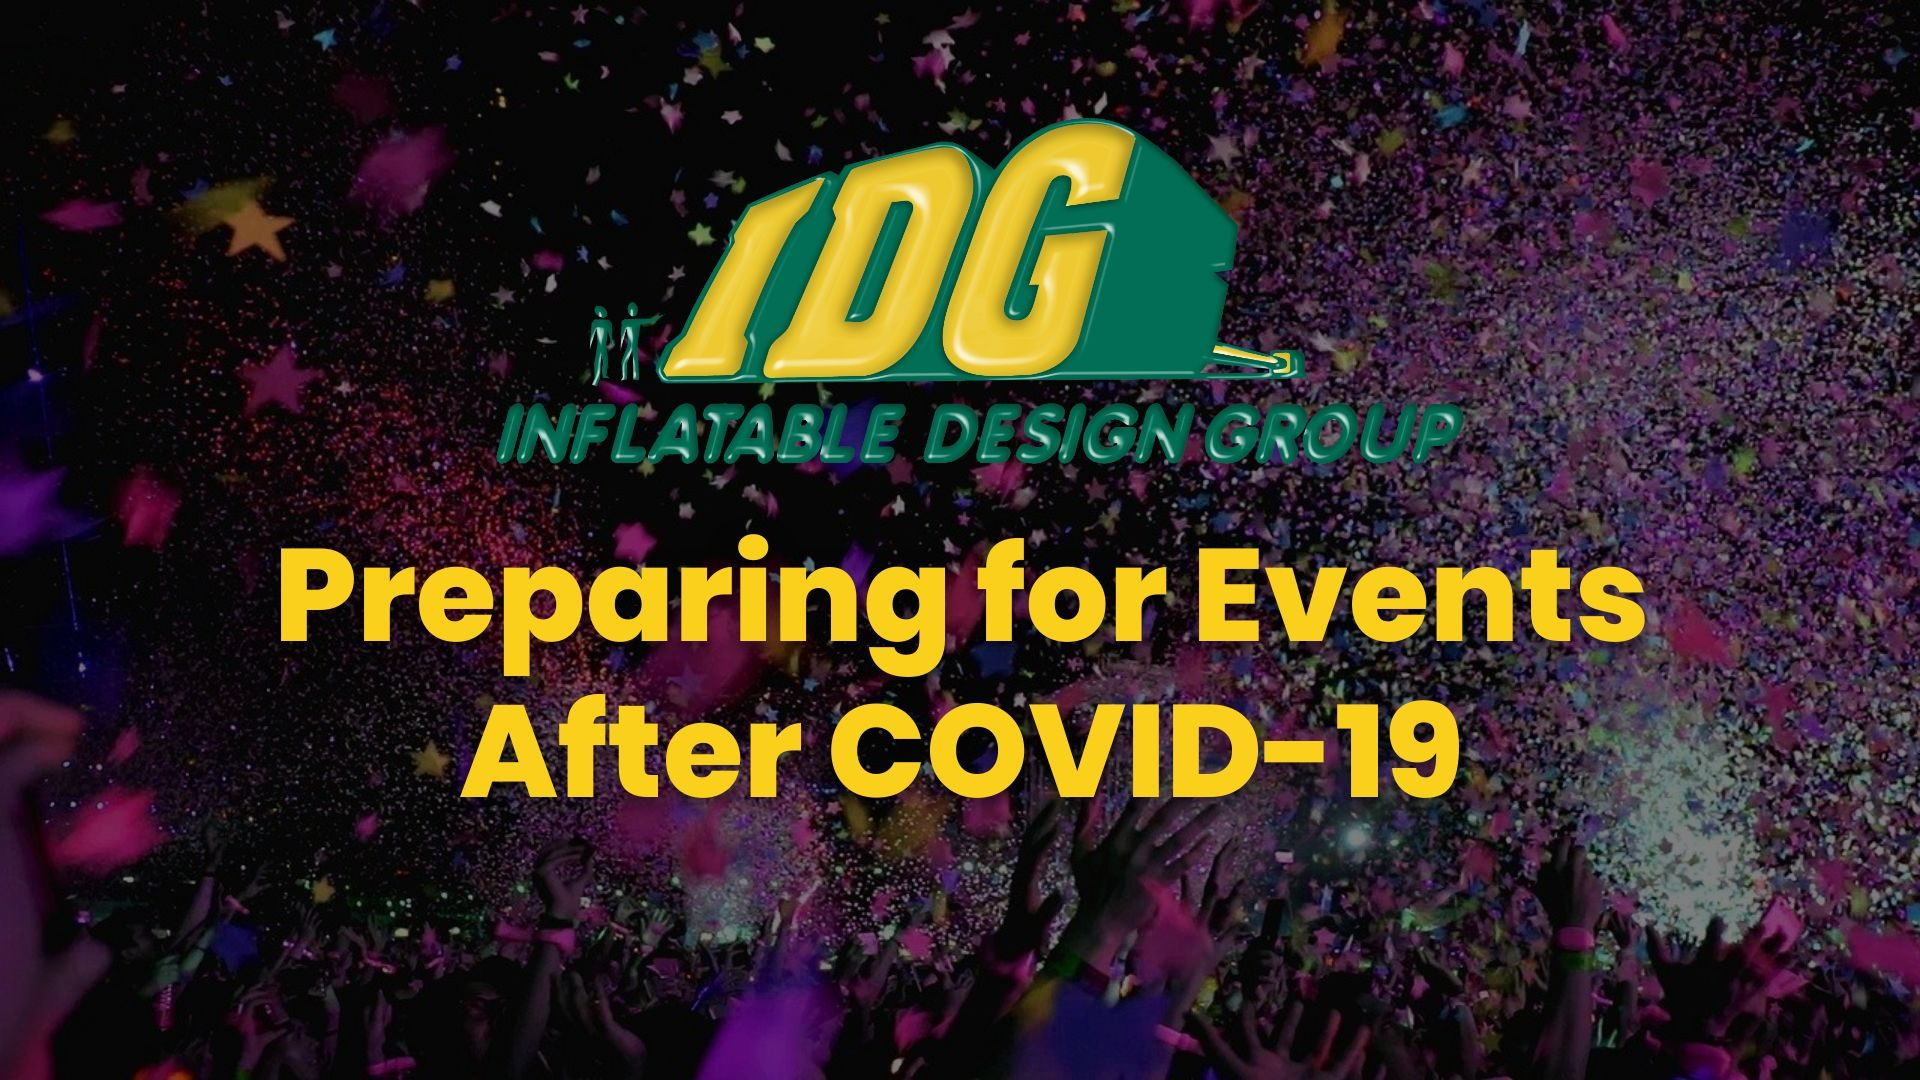 Preparing for Events After COVID-19